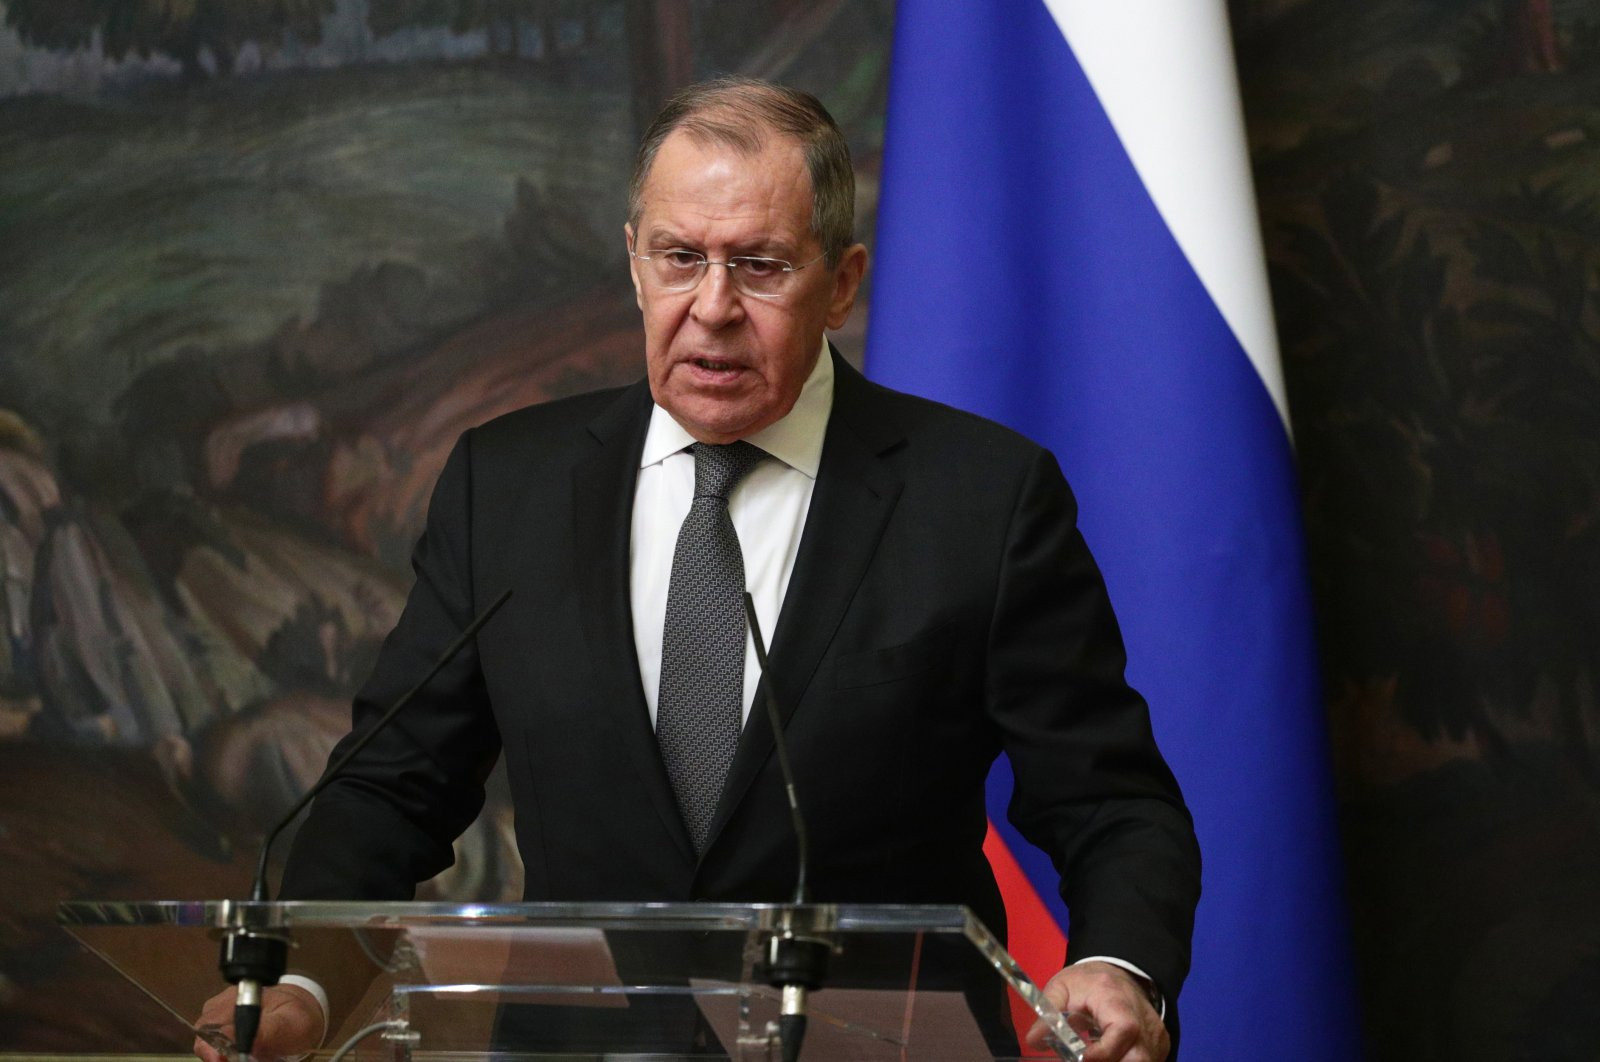 This Russian Foreign Affairs Ministry handout photo shows Foreign Minister Sergei Lavrov during a news conferencein Moscow, Russia, Dec. 14, 2020. (EPA Photo)